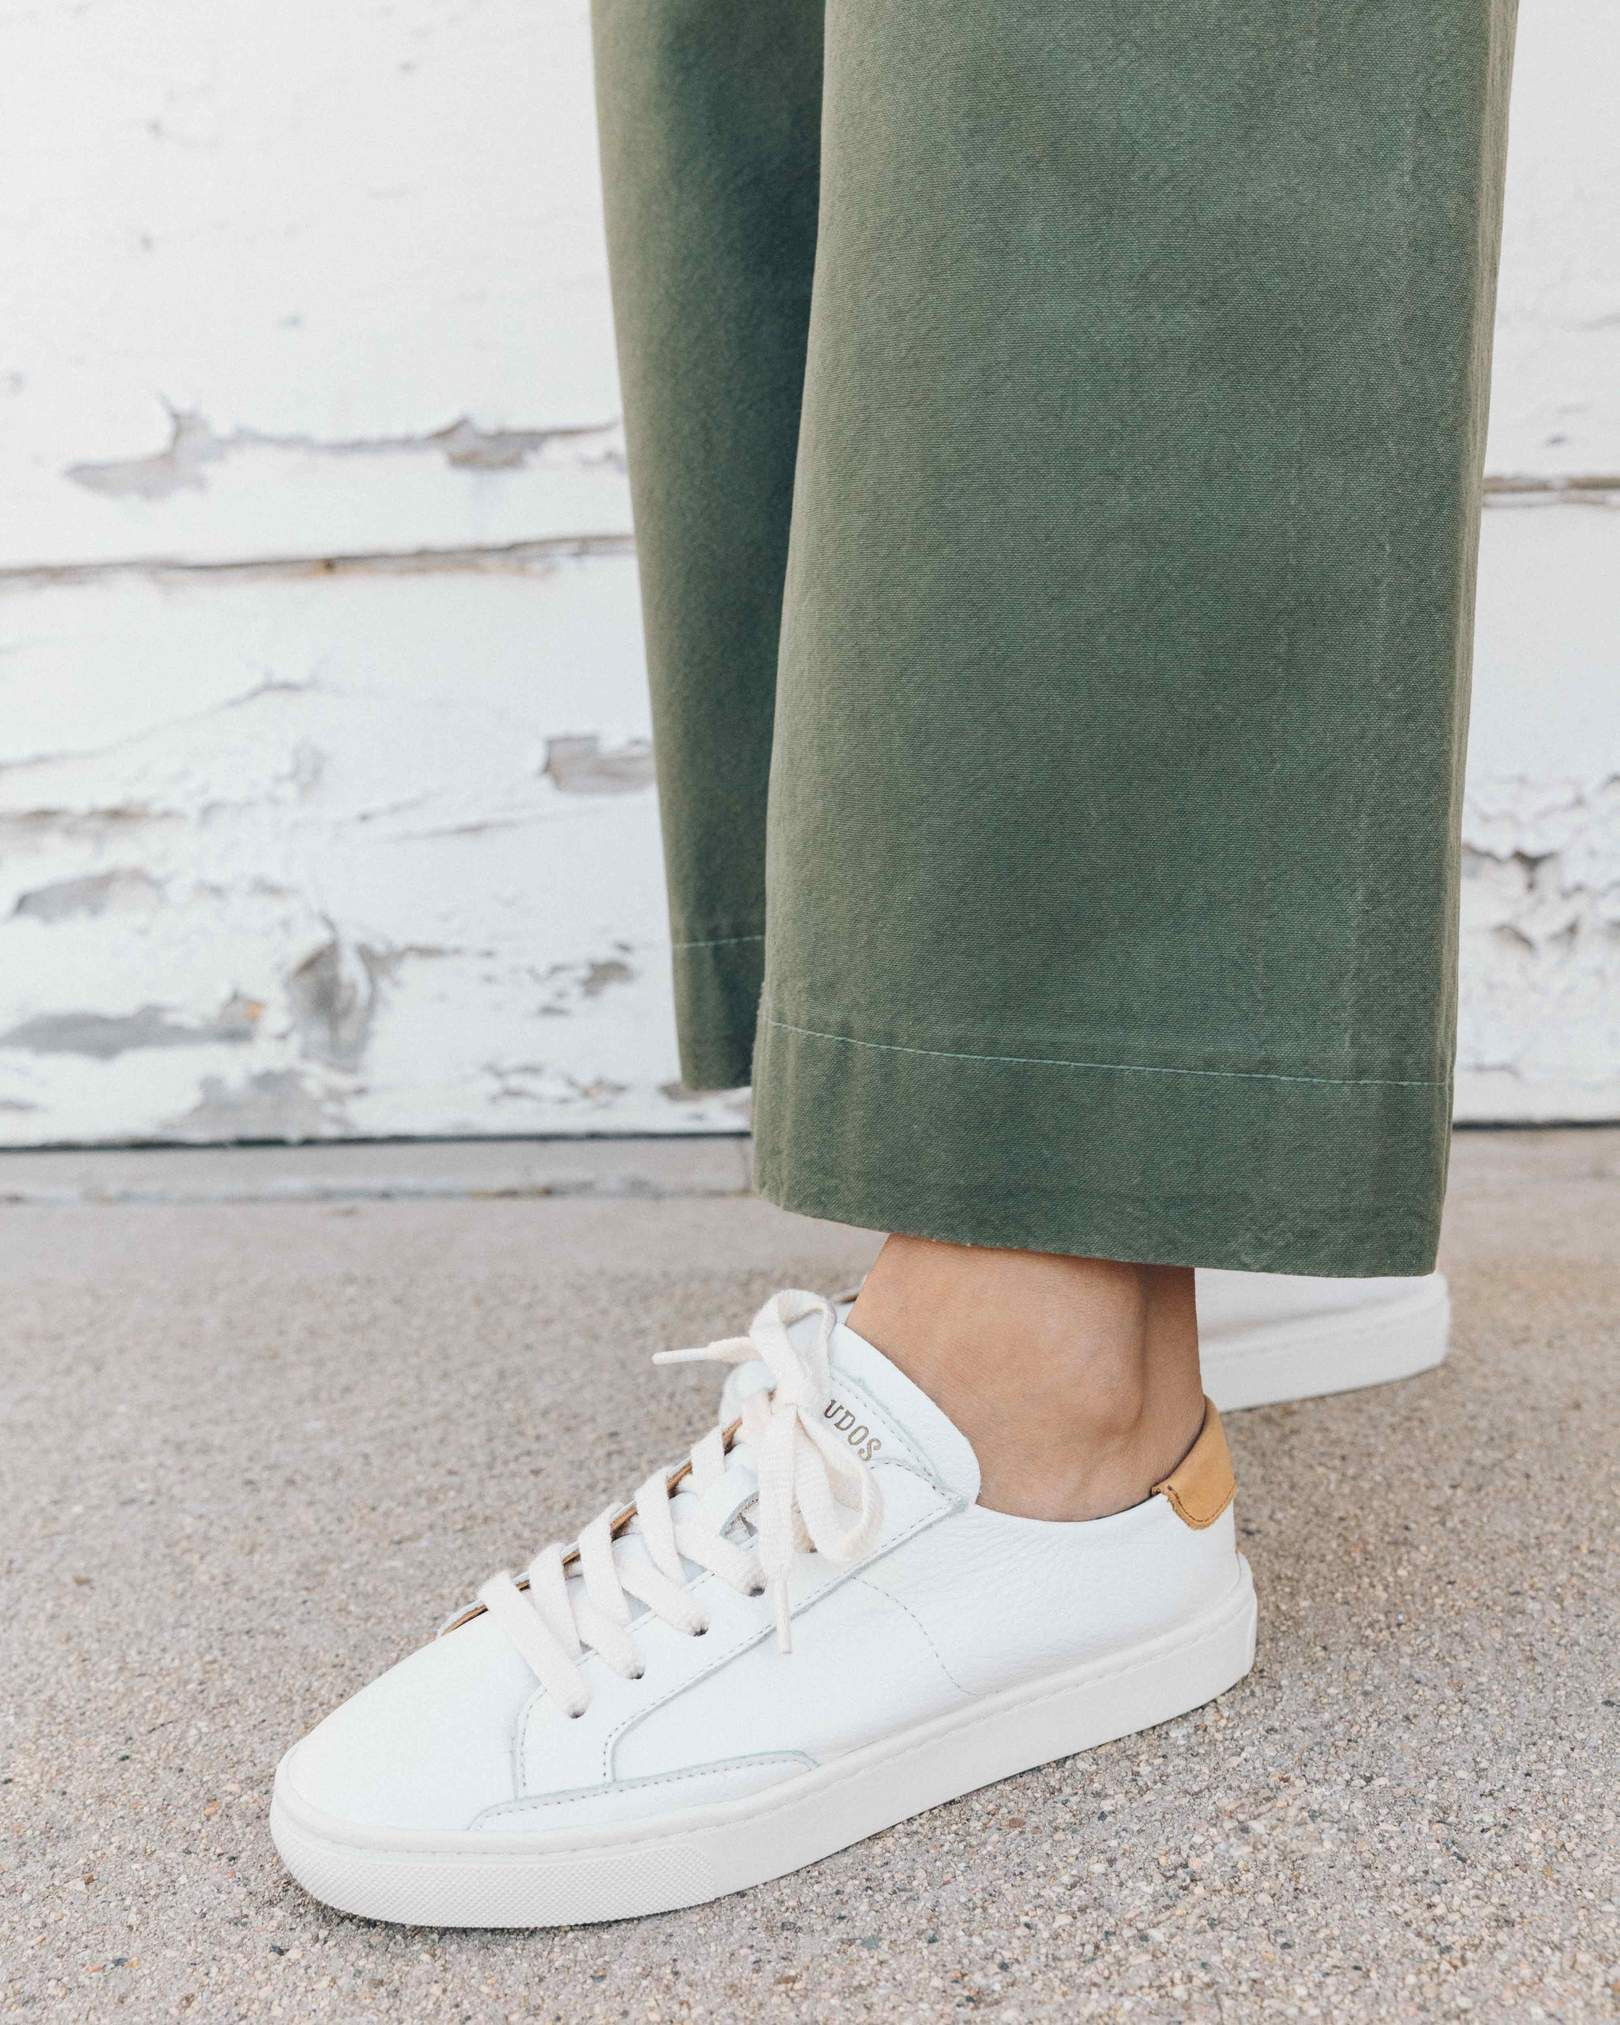 separation shoes 4ab30 44556 white Classic Sneakers, Womens Casual Sneakers, White Sneakers, Casual  Shoes, Keds,